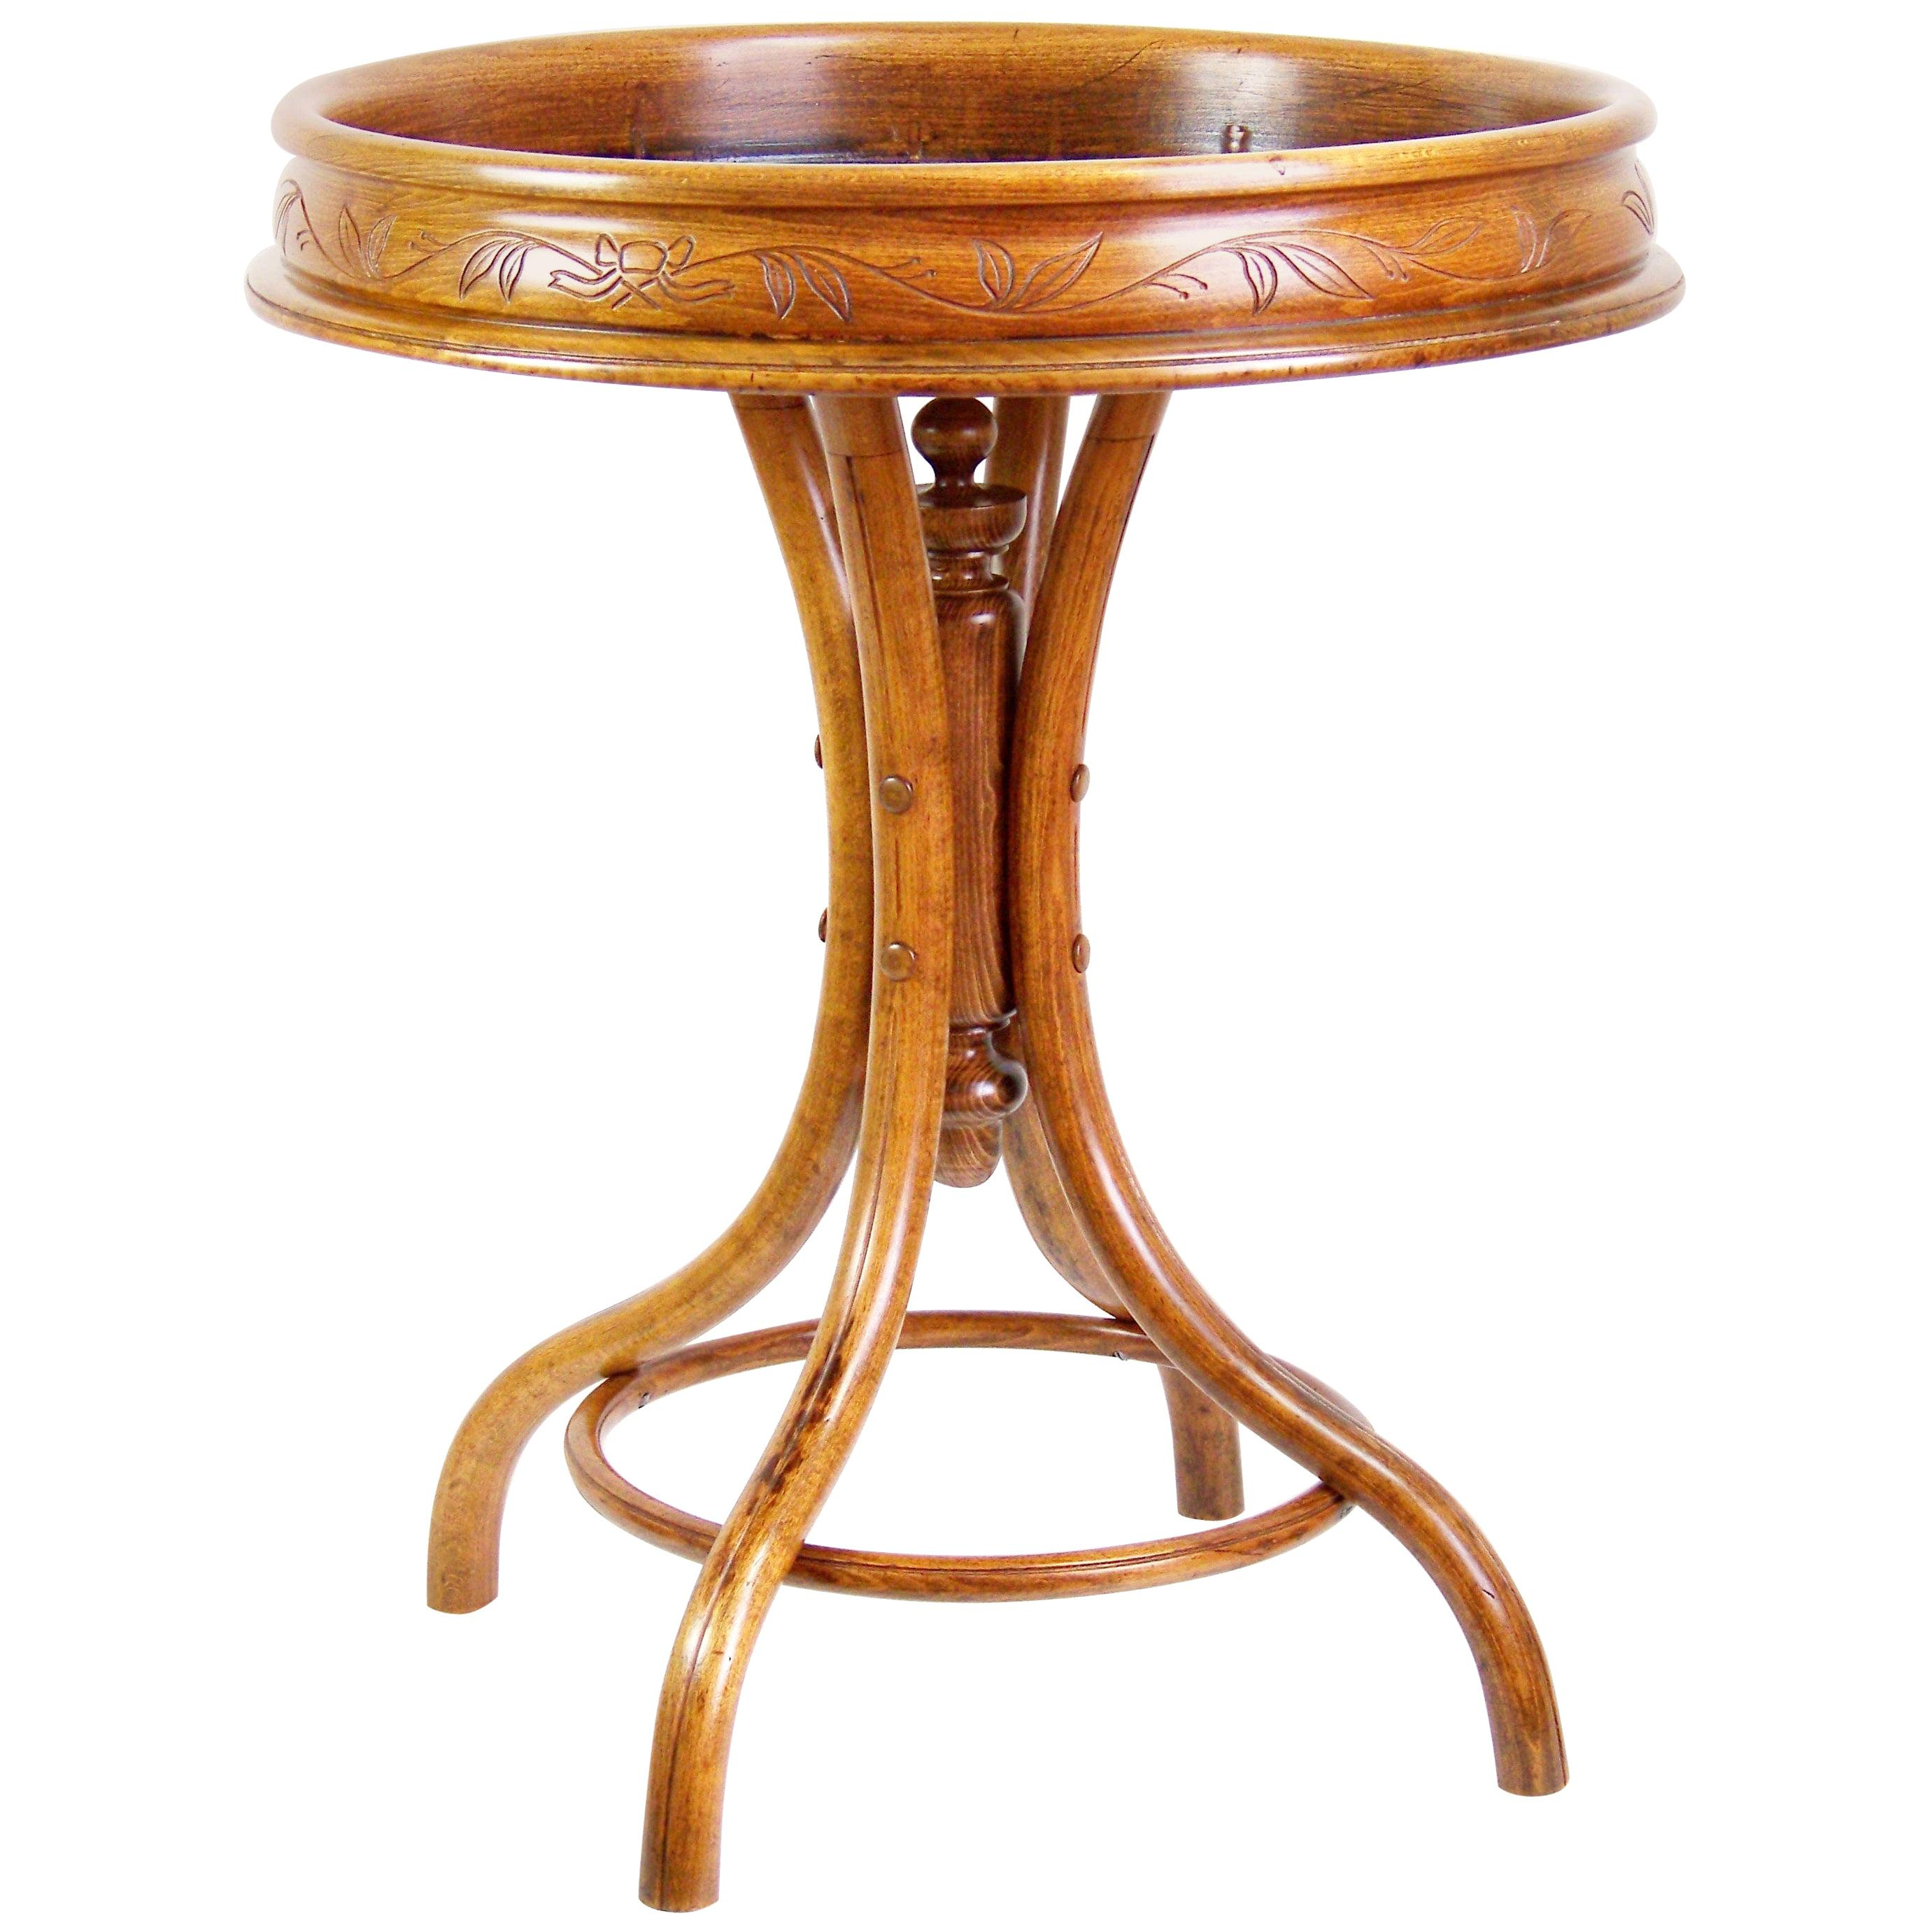 Flower Table Thonet, circa 1880